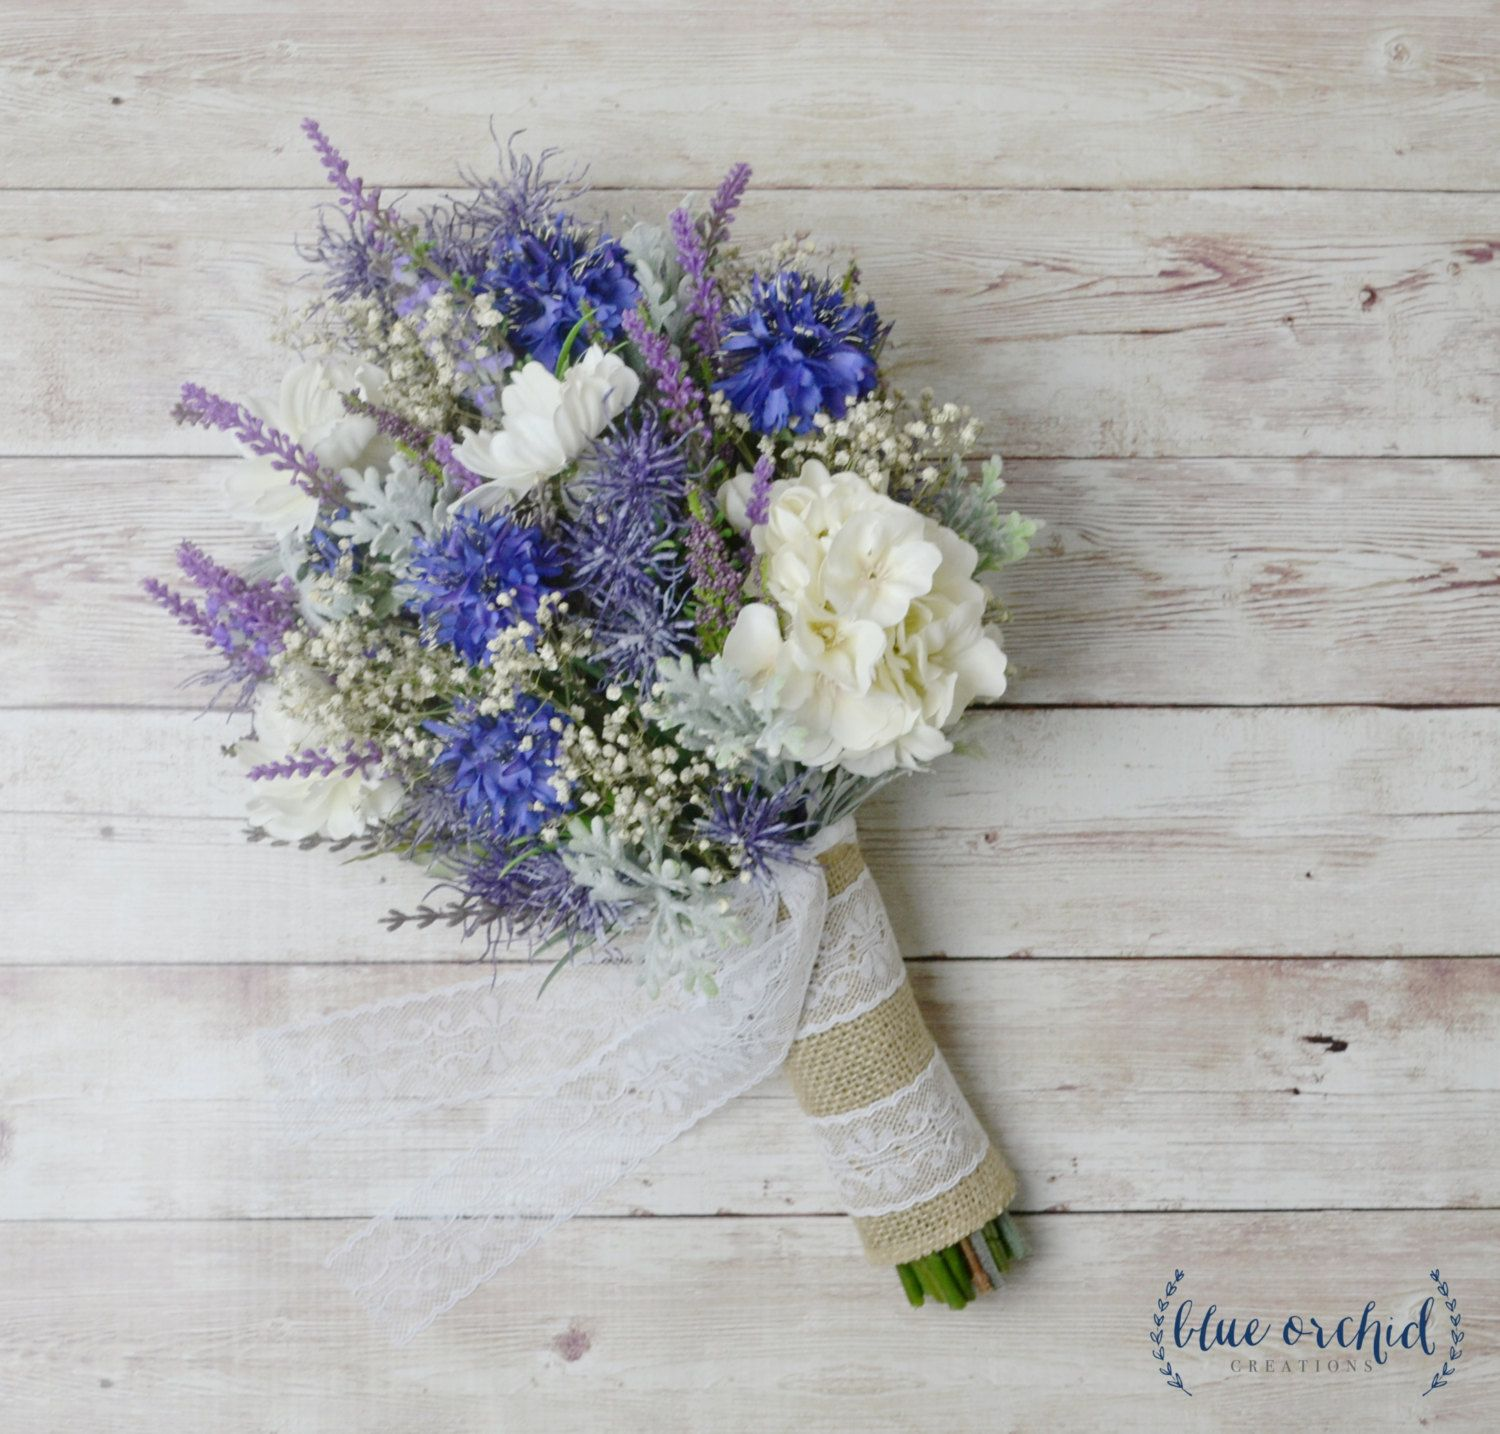 Wildflower Bouquet Lavender Bouquet Bridal Bouquet Rustic Bouquet Woodland Weddin Woodland Wedding Bouquet Small Bridal Bouquets Wildflower Bridal Bouquets